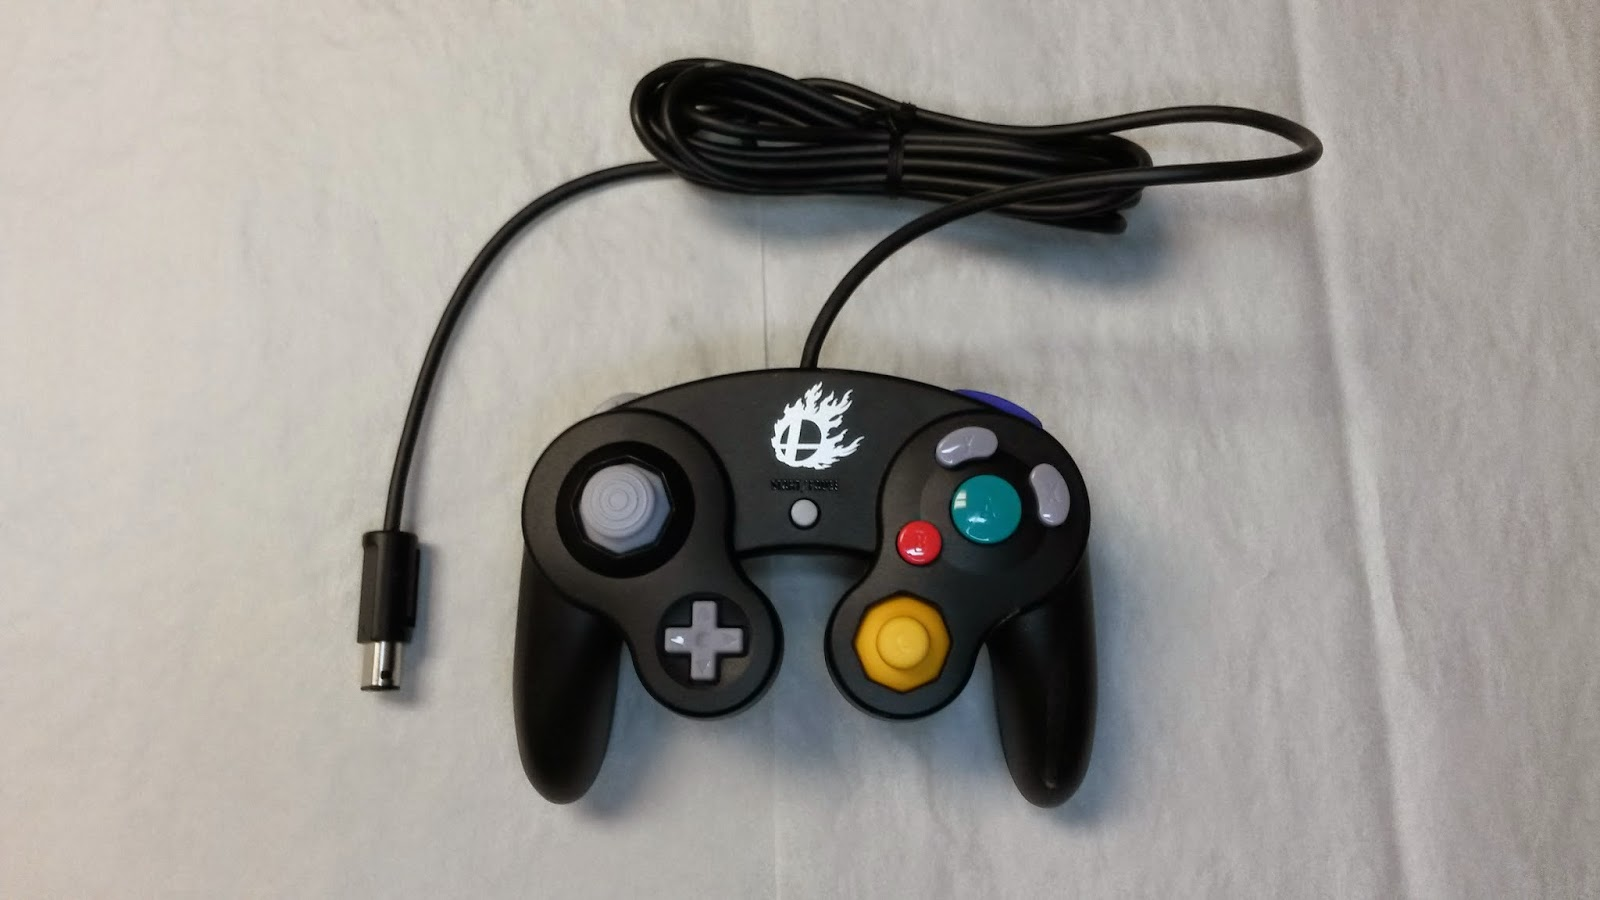 Gamecube Controller Wiring Diagram Right Stick Guide And Projects A Better Part 1 Electrical Planning Rh Msalino Hugg Blogspot Com Xbox